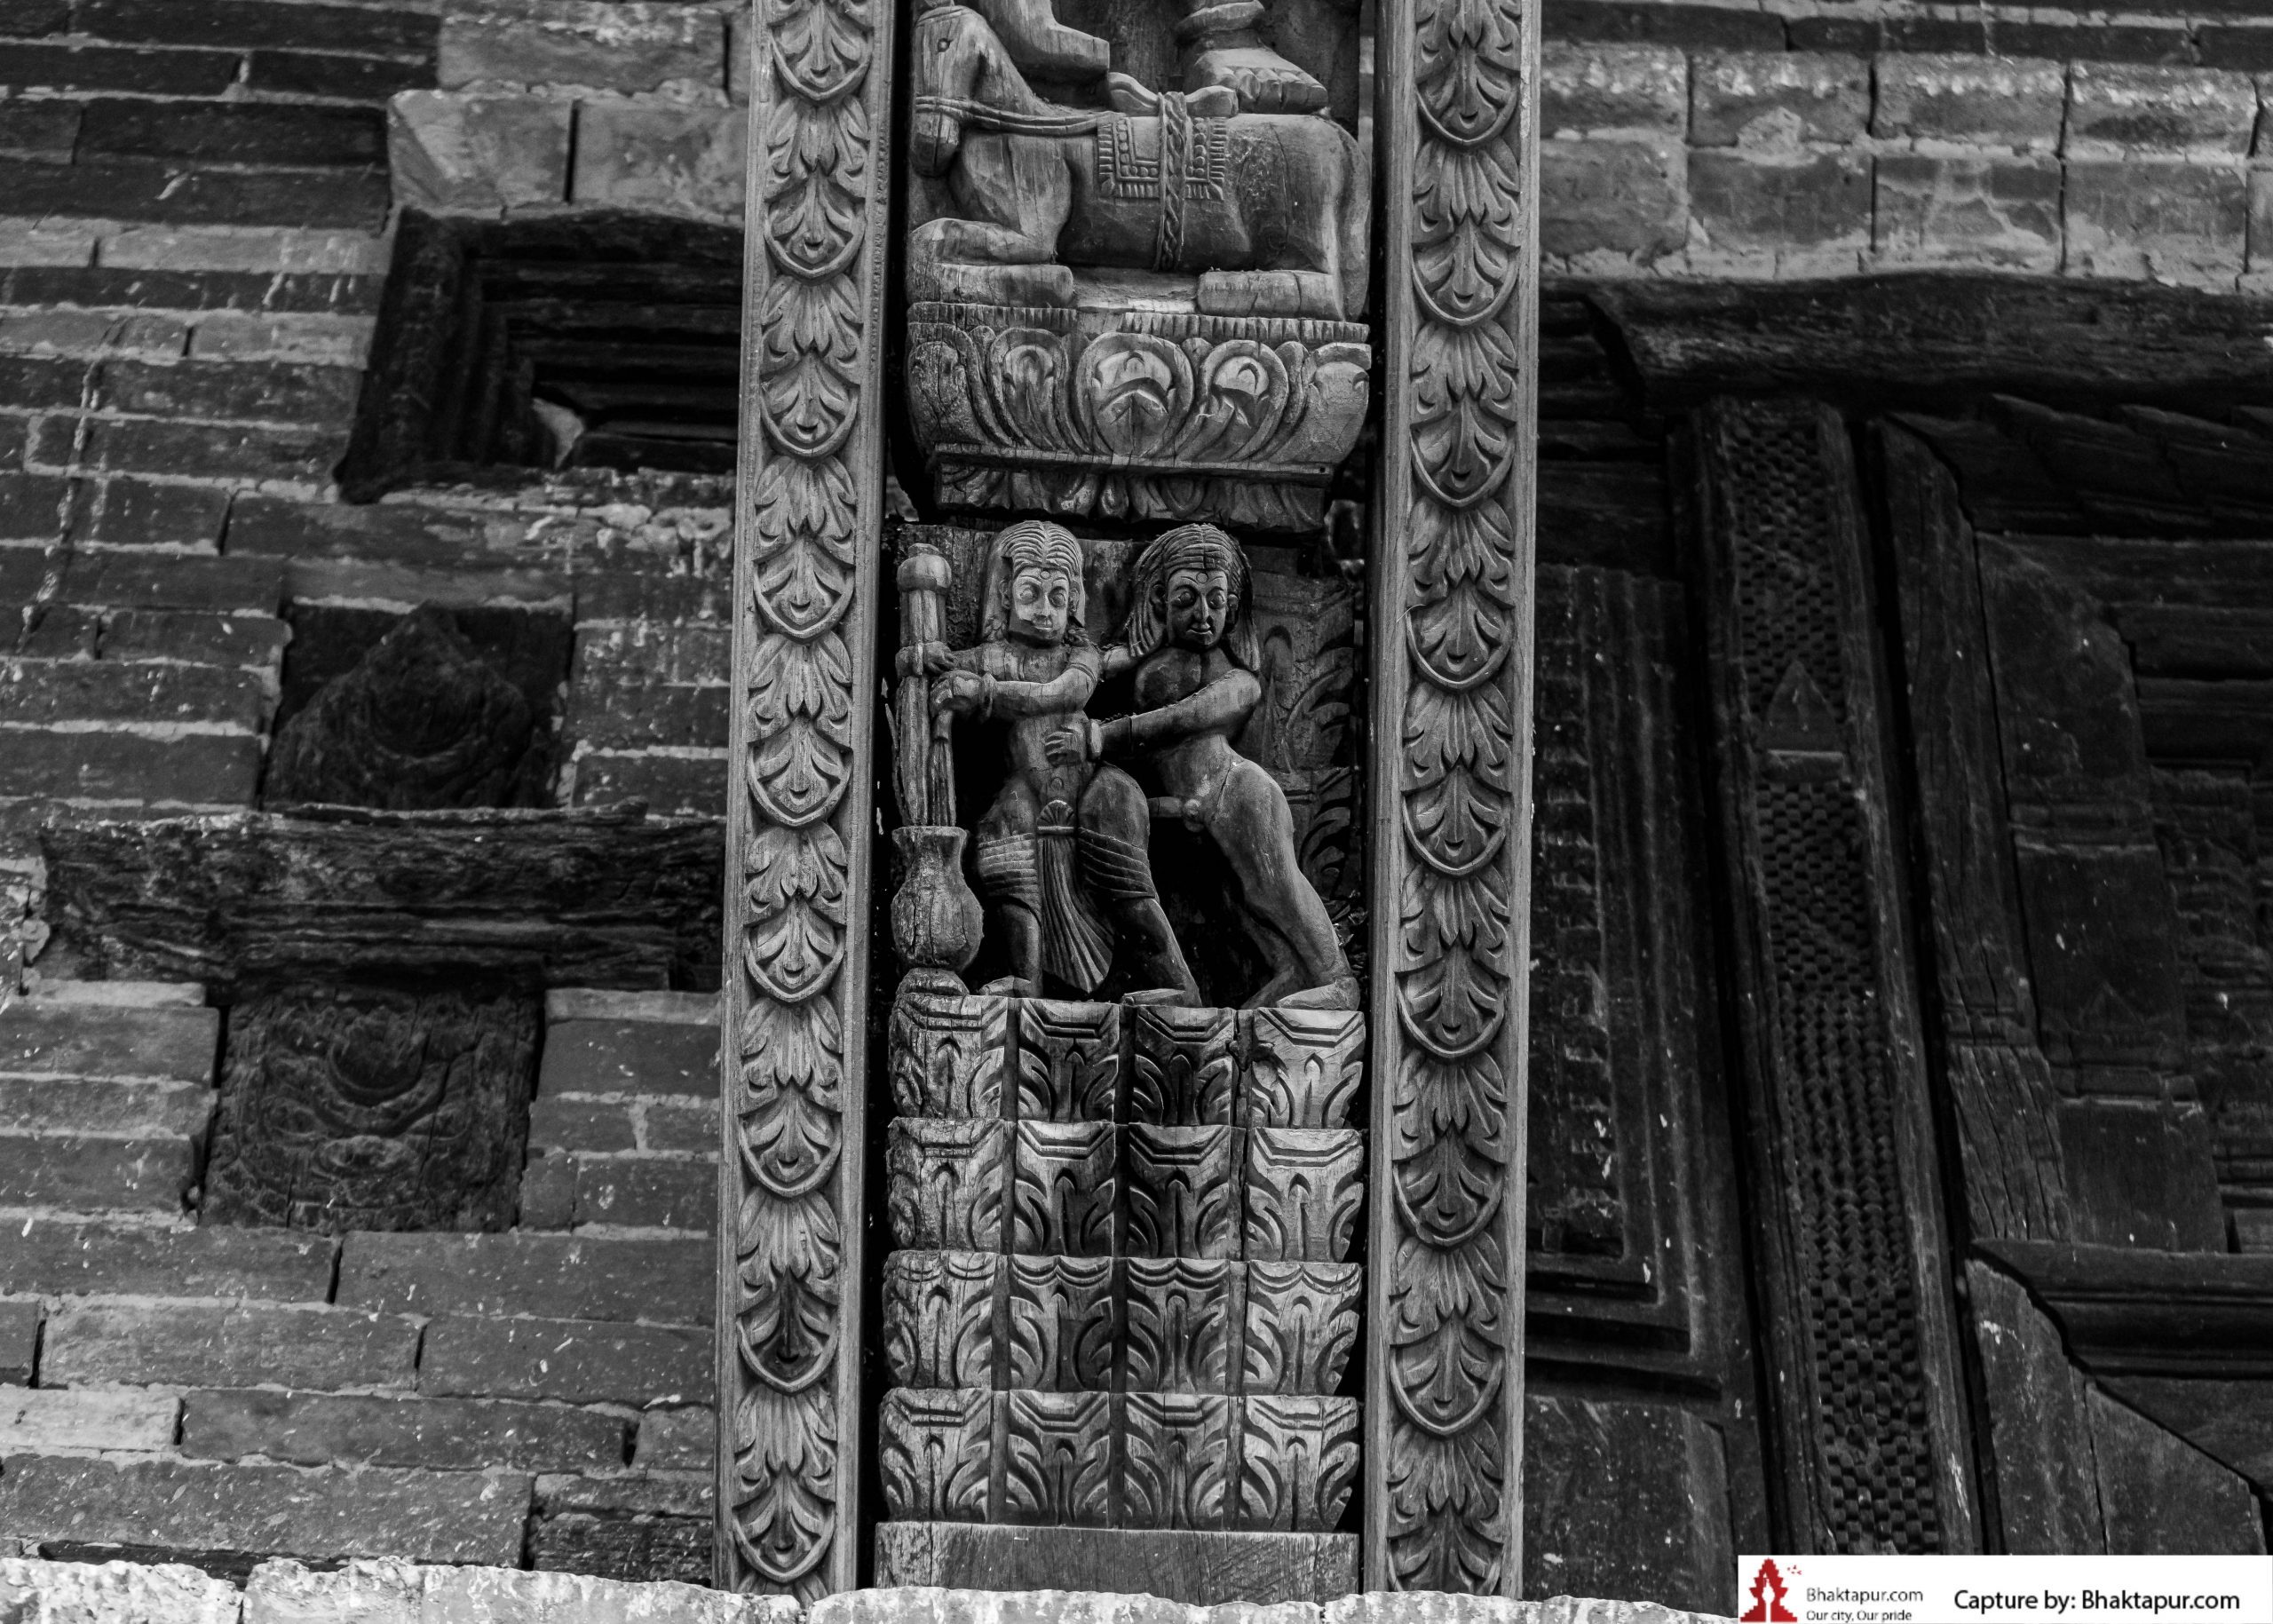 https://www.bhaktapur.com/wp-content/uploads/2021/08/erotic-carving-101-of-137-scaled.jpg